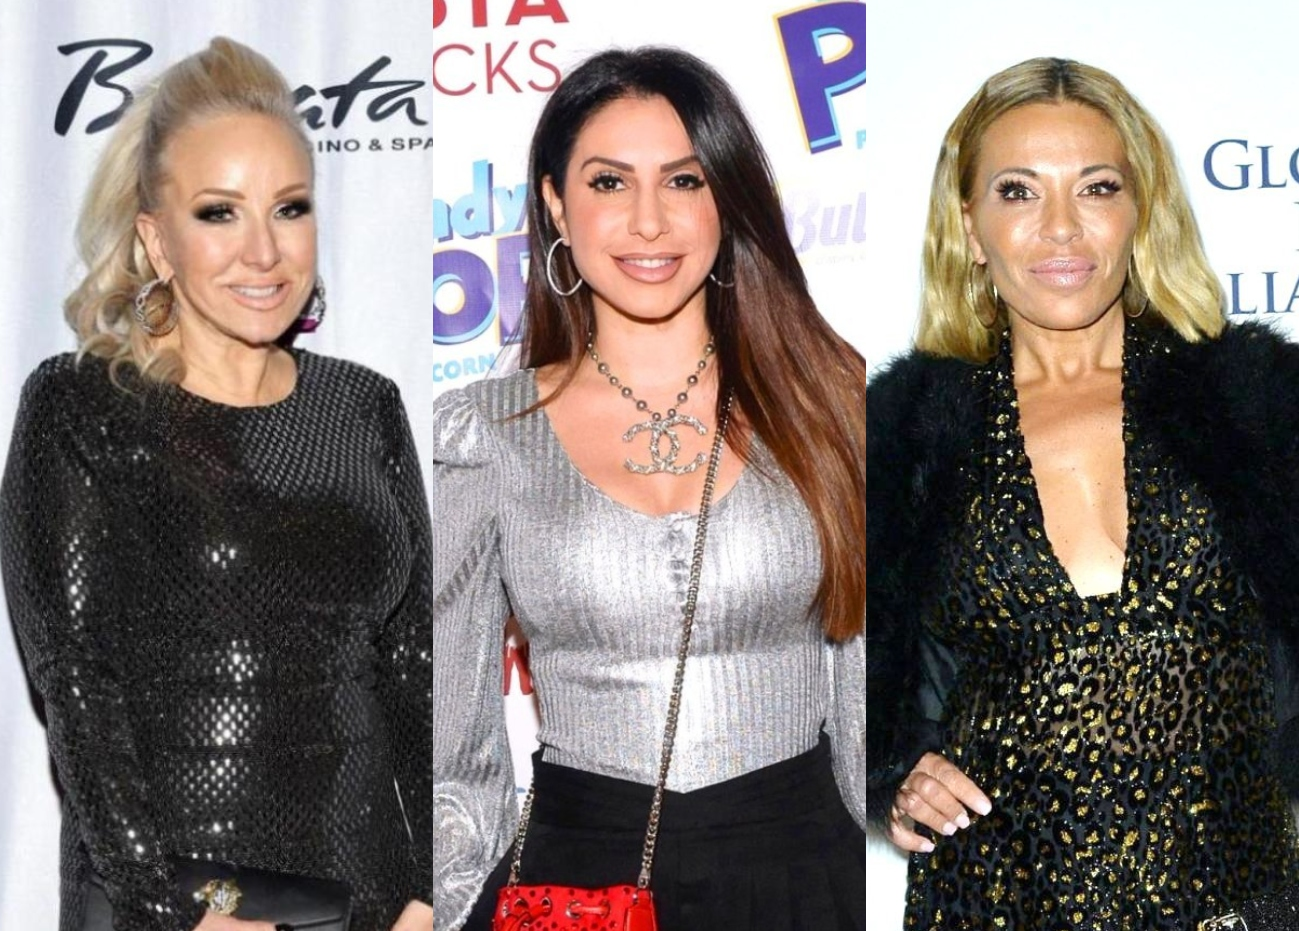 """Margaret Josephs Confirms Drama With Jennifer Aydin, Teases """"Scuffle"""" Among RHONJ Cast, And Hints That Dolores Catania Had to Be """"Held Back"""""""